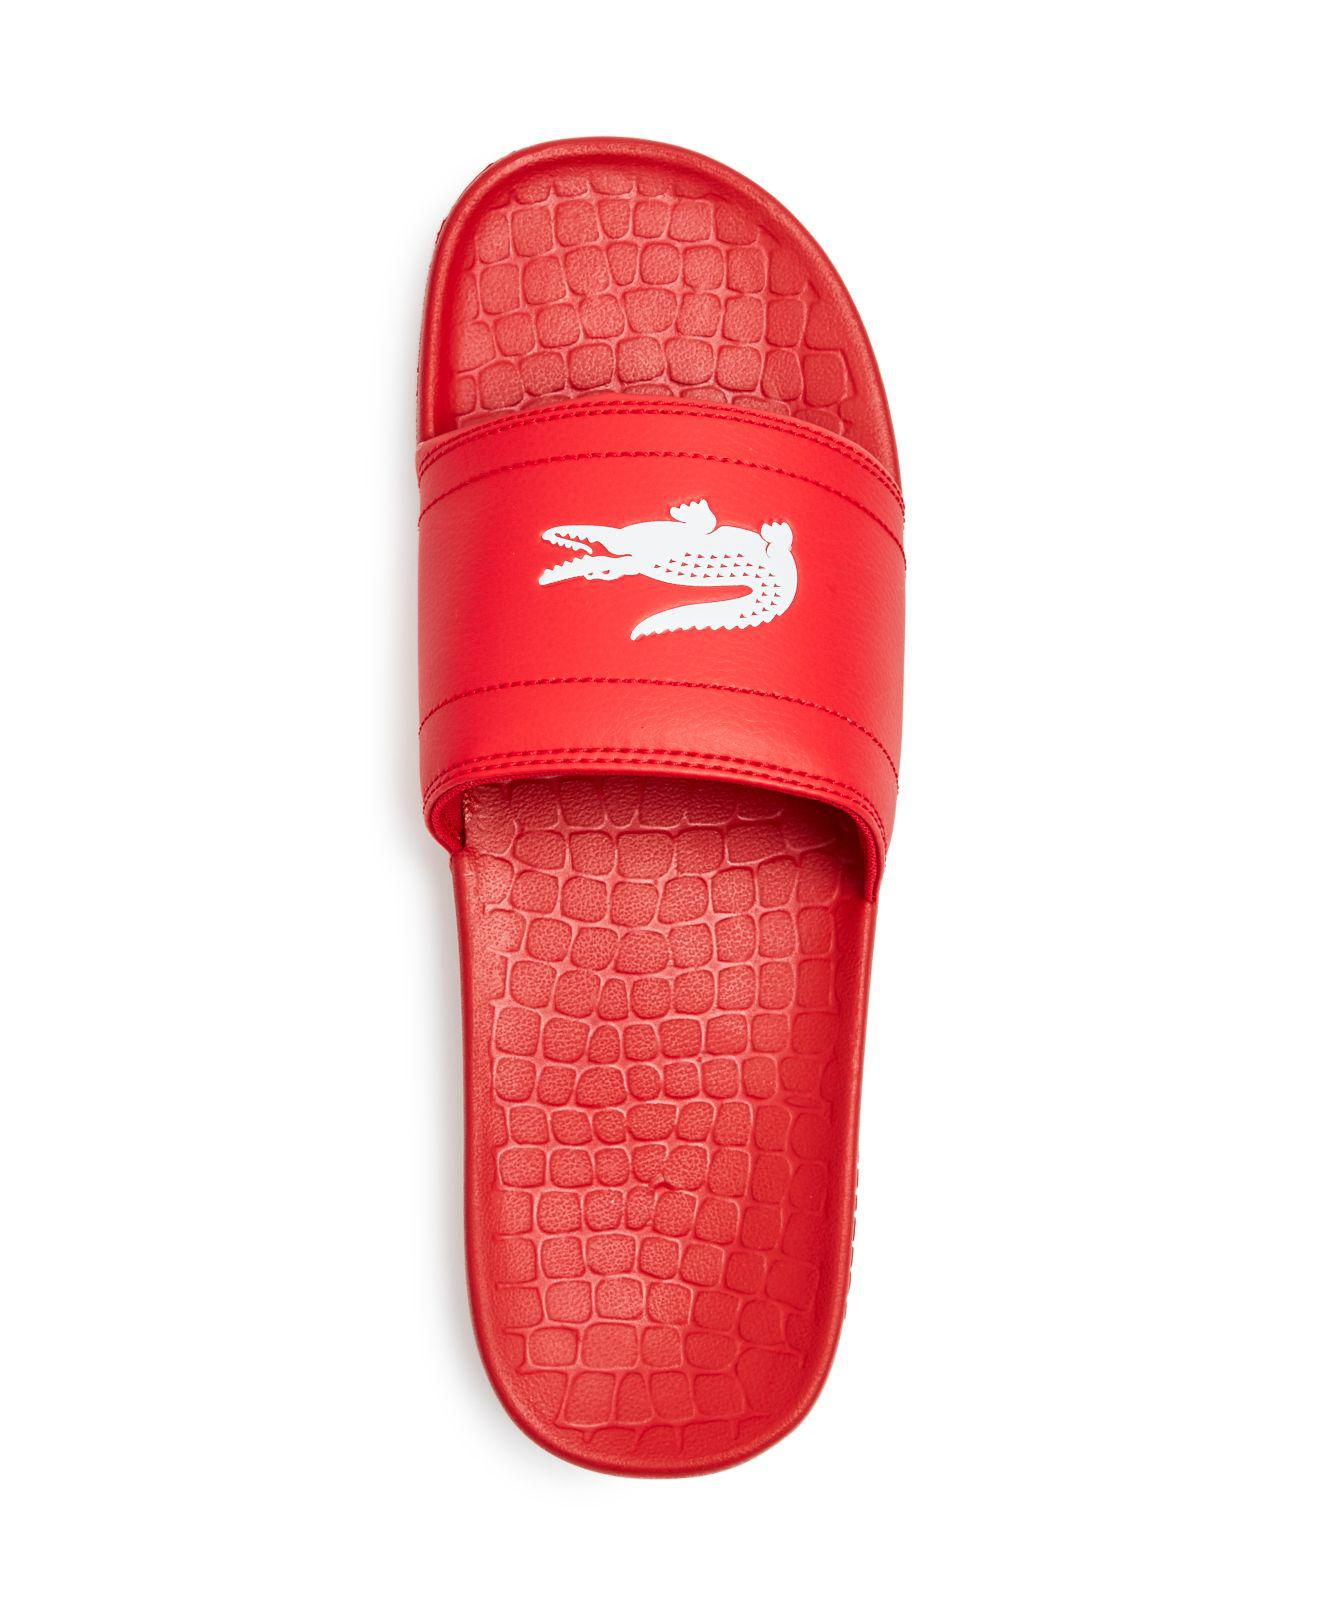 2a98271d Lacoste Red Men's Fraisier Slide Sandals for men